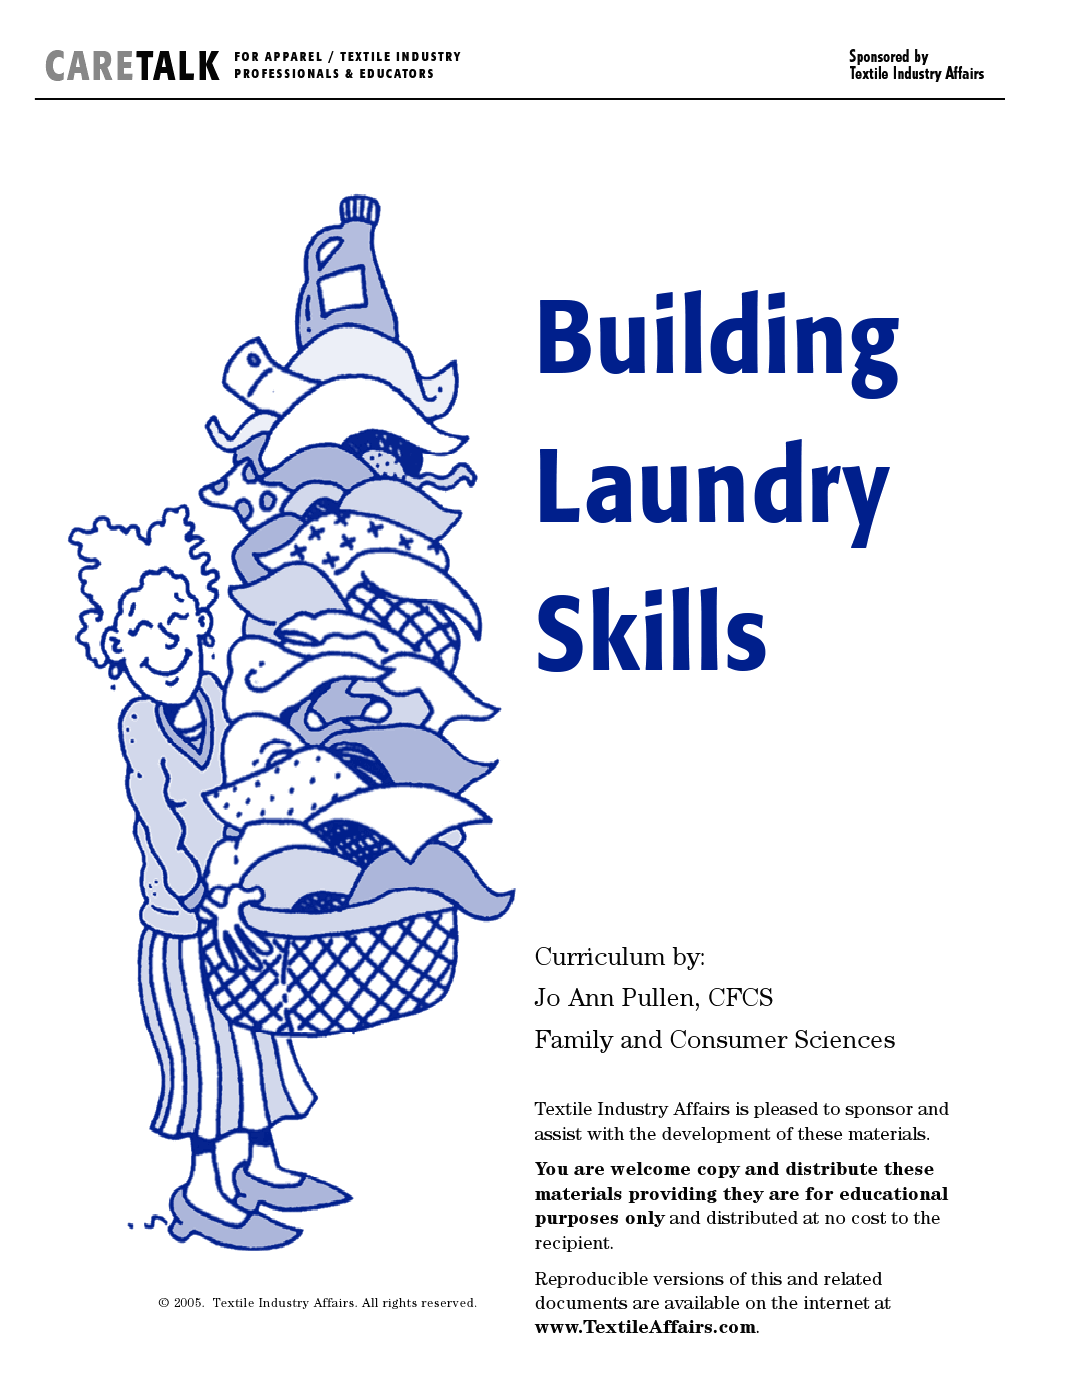 Workbooks special education life skills worksheets : Laundry curriculum with worksheets and printable care guide | FACS ...